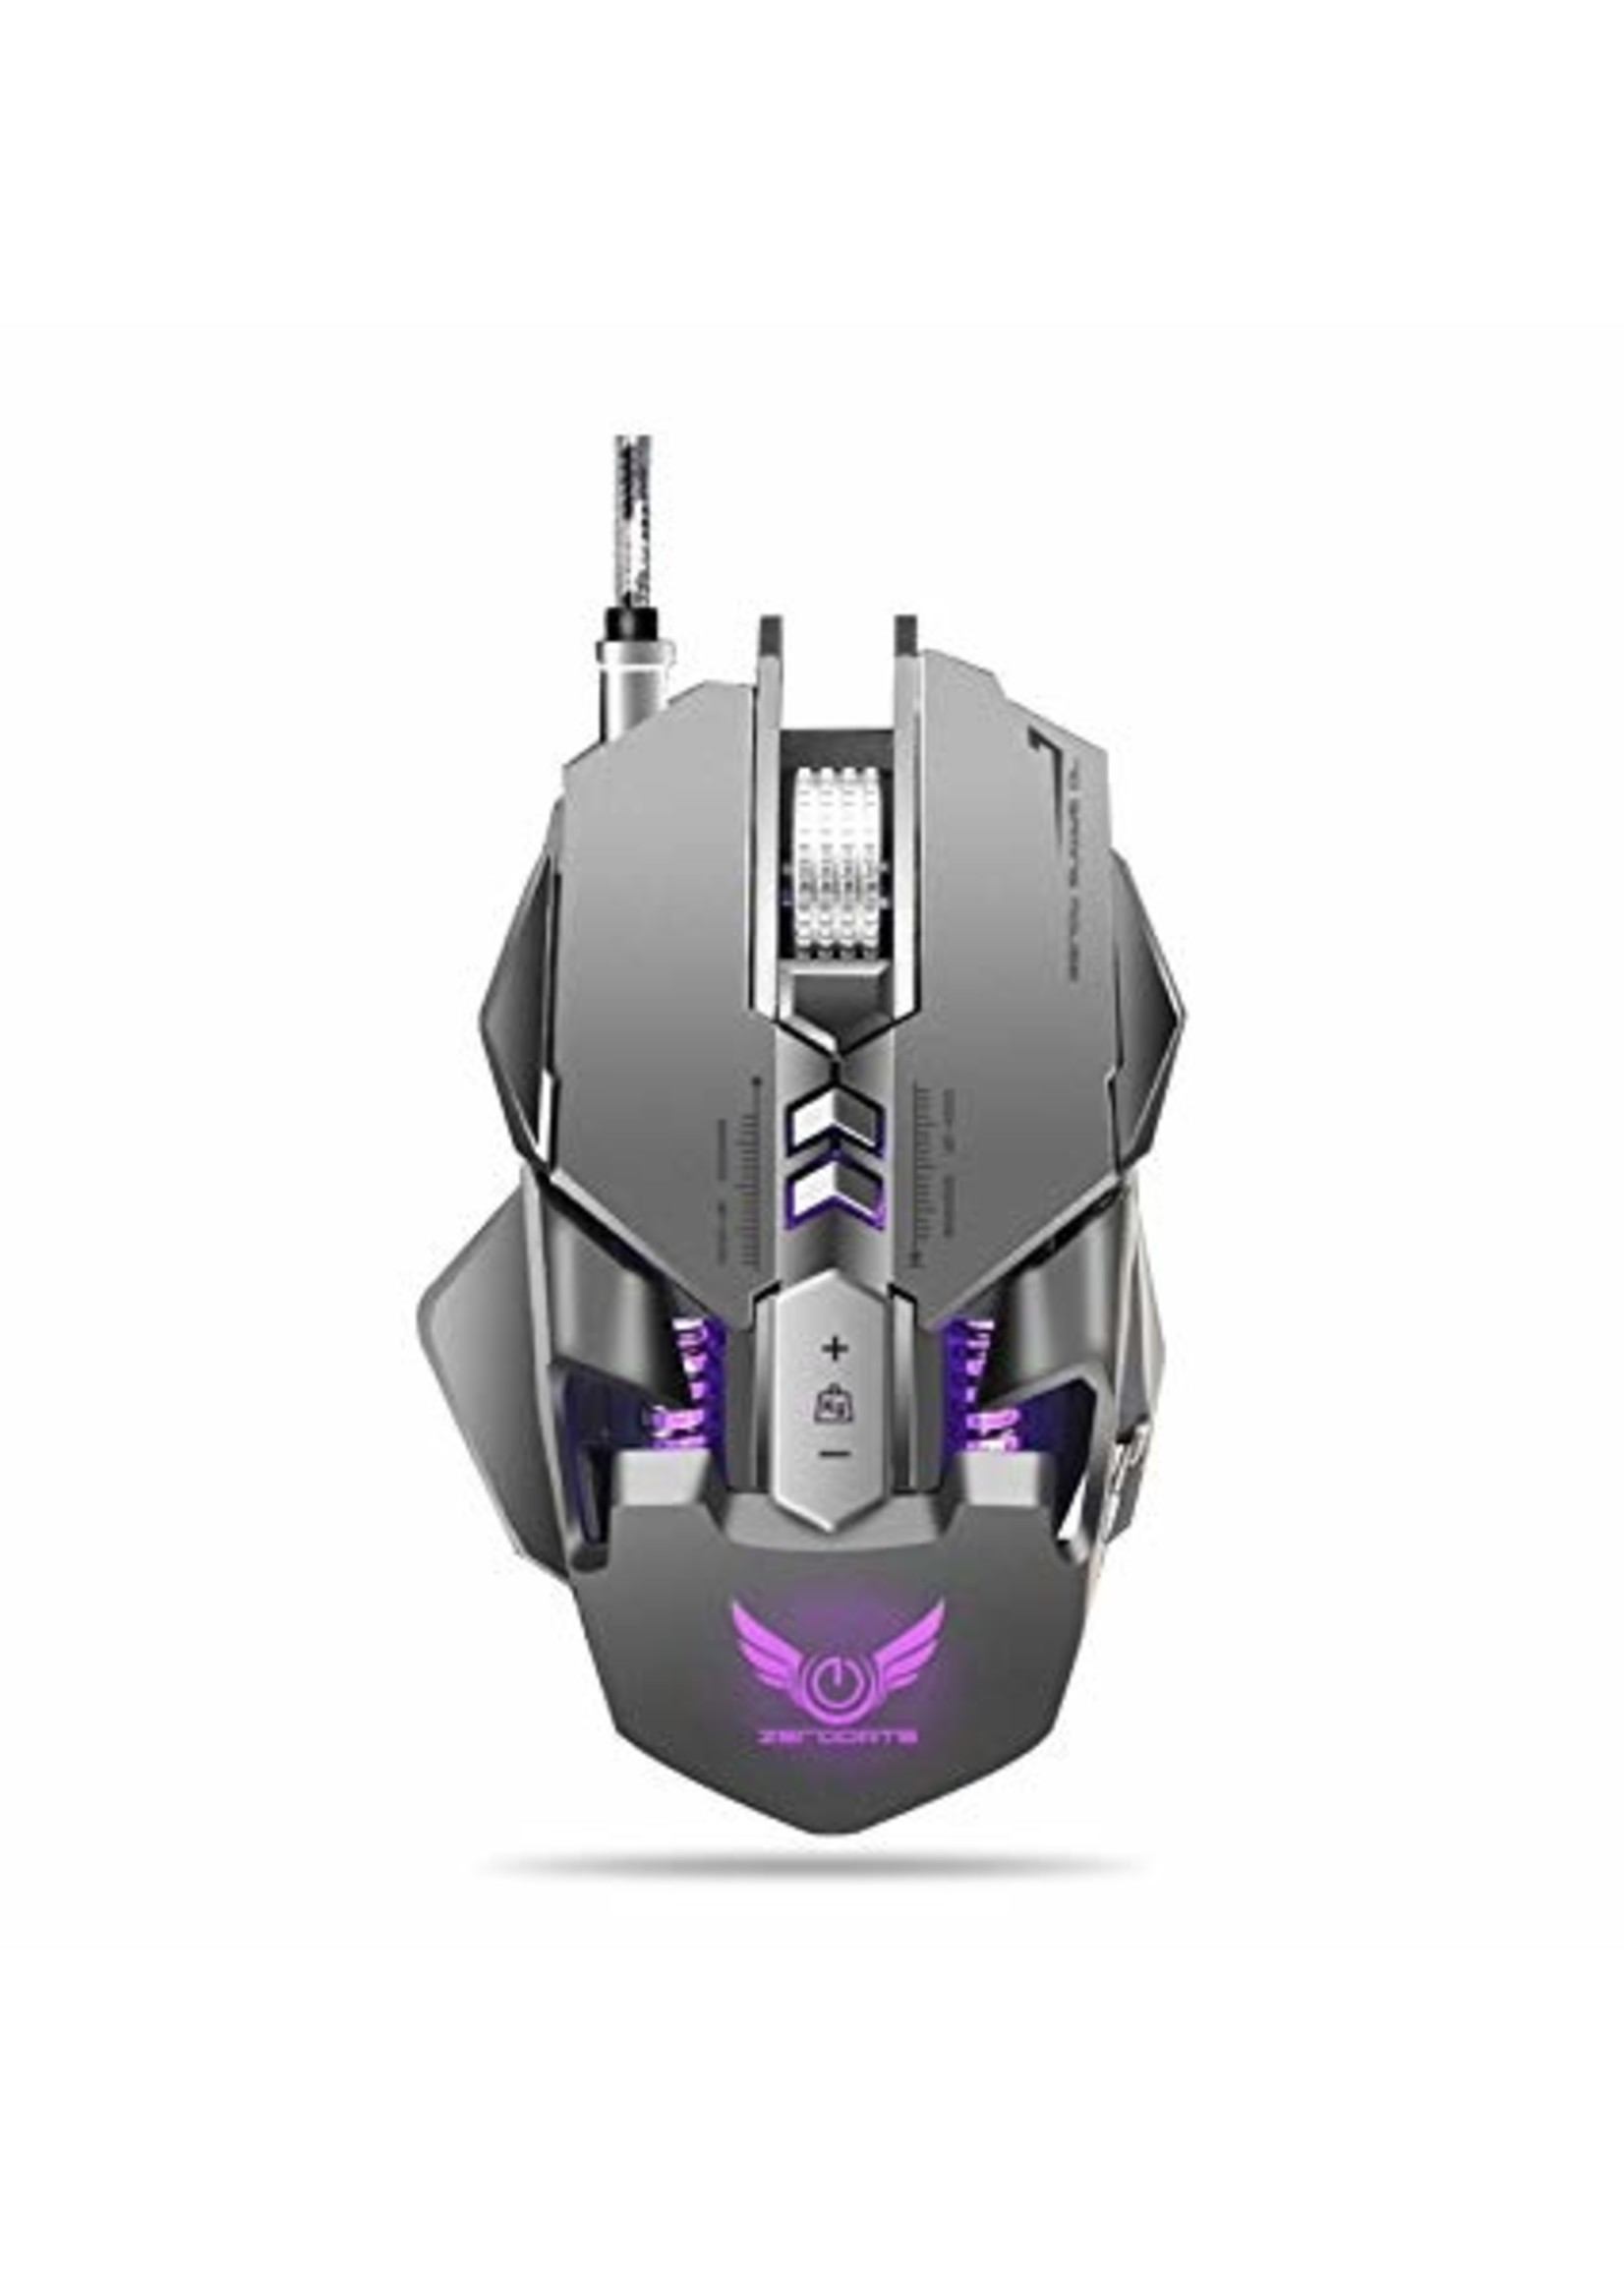 Gaming Mouse 7 Button 7200 dpi RGB Light USB Wired